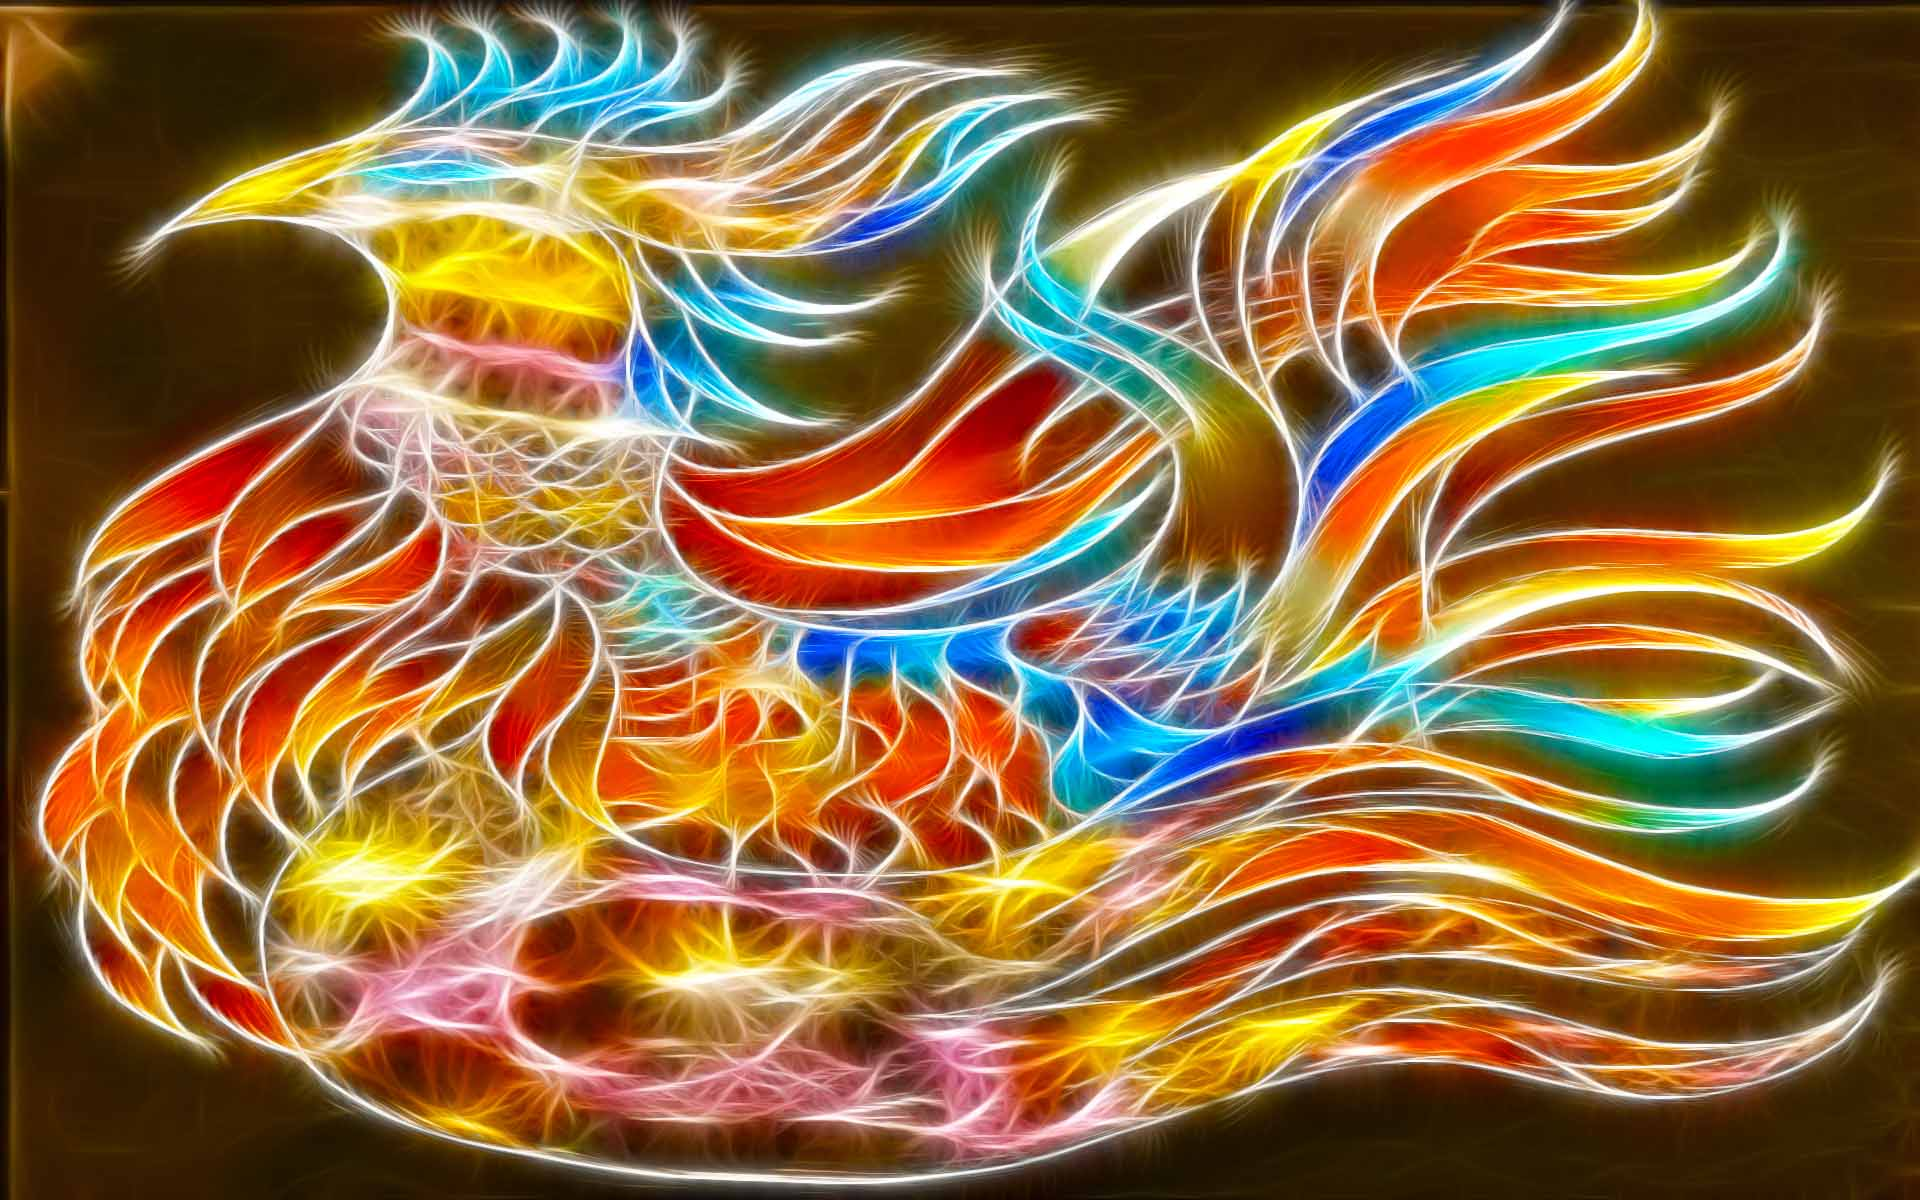 Phoenix Bird Wallpapers Free Download